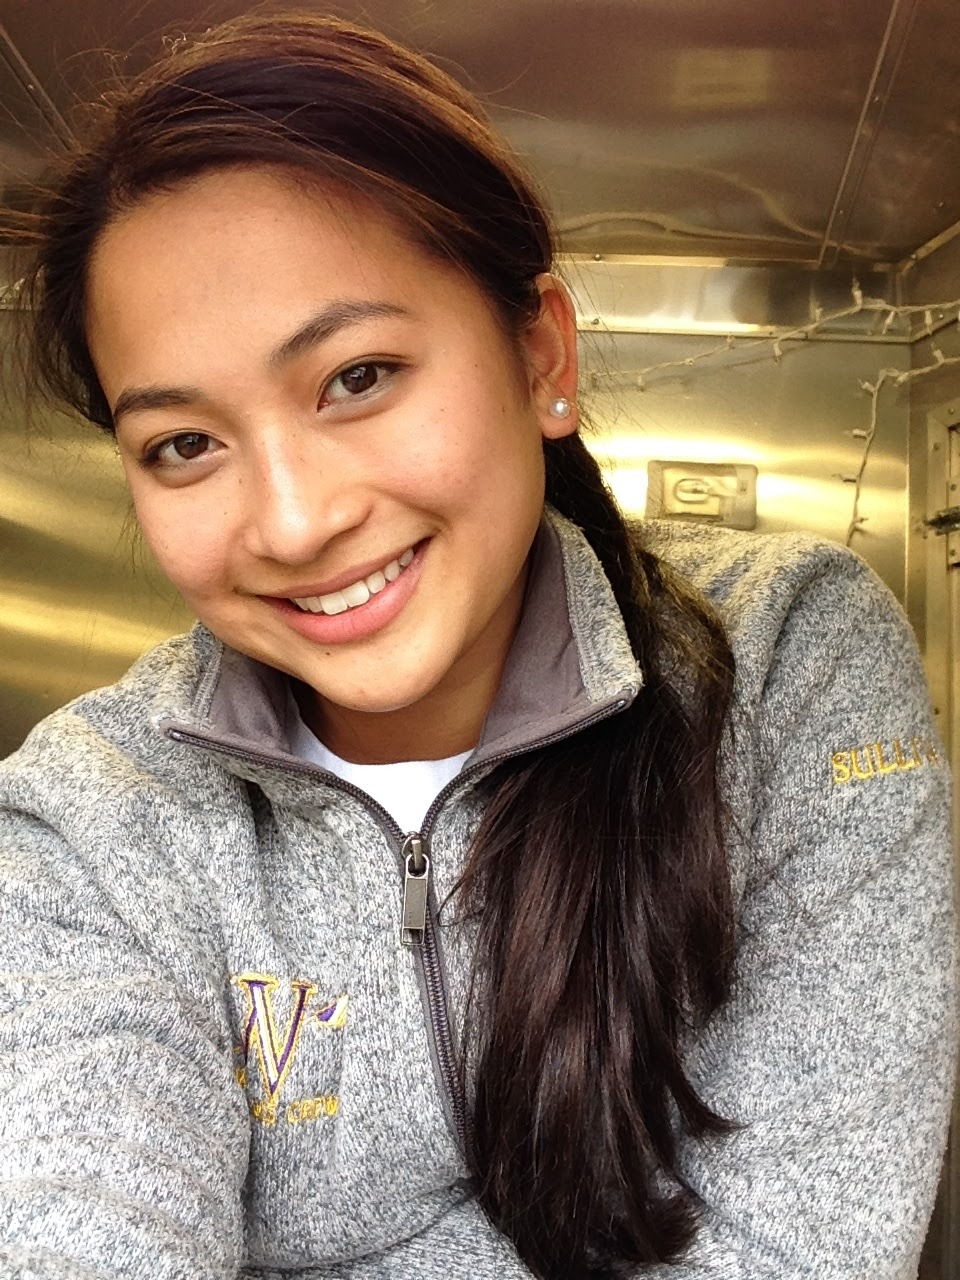 MARY PHAN   Mary is a native Memphian and graduate of Rhodes College with a double major in Economics and Art History. She is active in the arts community in Memphis whether she is playing her fiddle at a show or helping out with an art installation. She also enjoys wood burning, lettering, and painting. She's excited for the future of art in Memphis and is glad she can be a part of it through places like the Art Project.